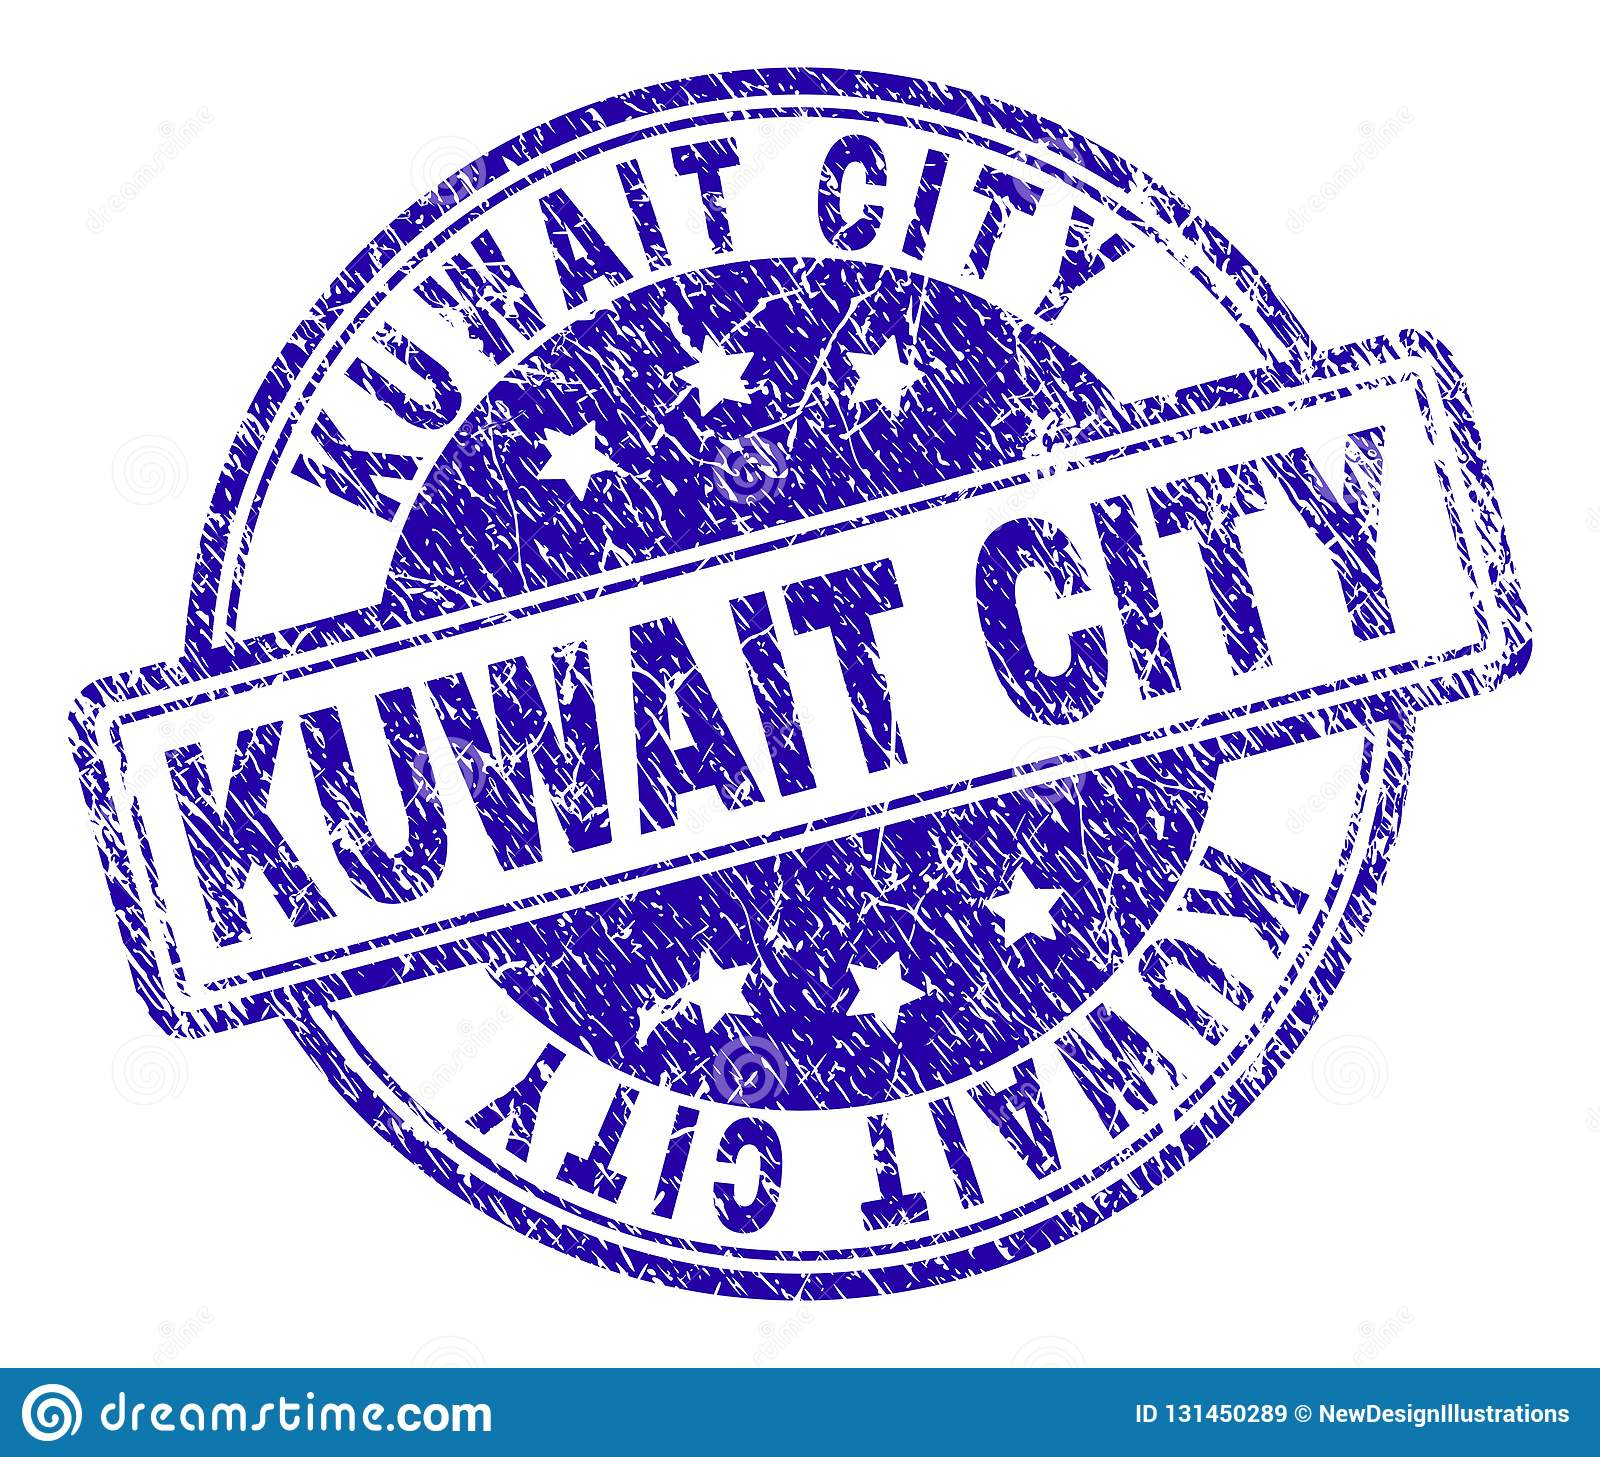 Grunge Textured KUWAIT CITY Stamp Seal Stock Vector